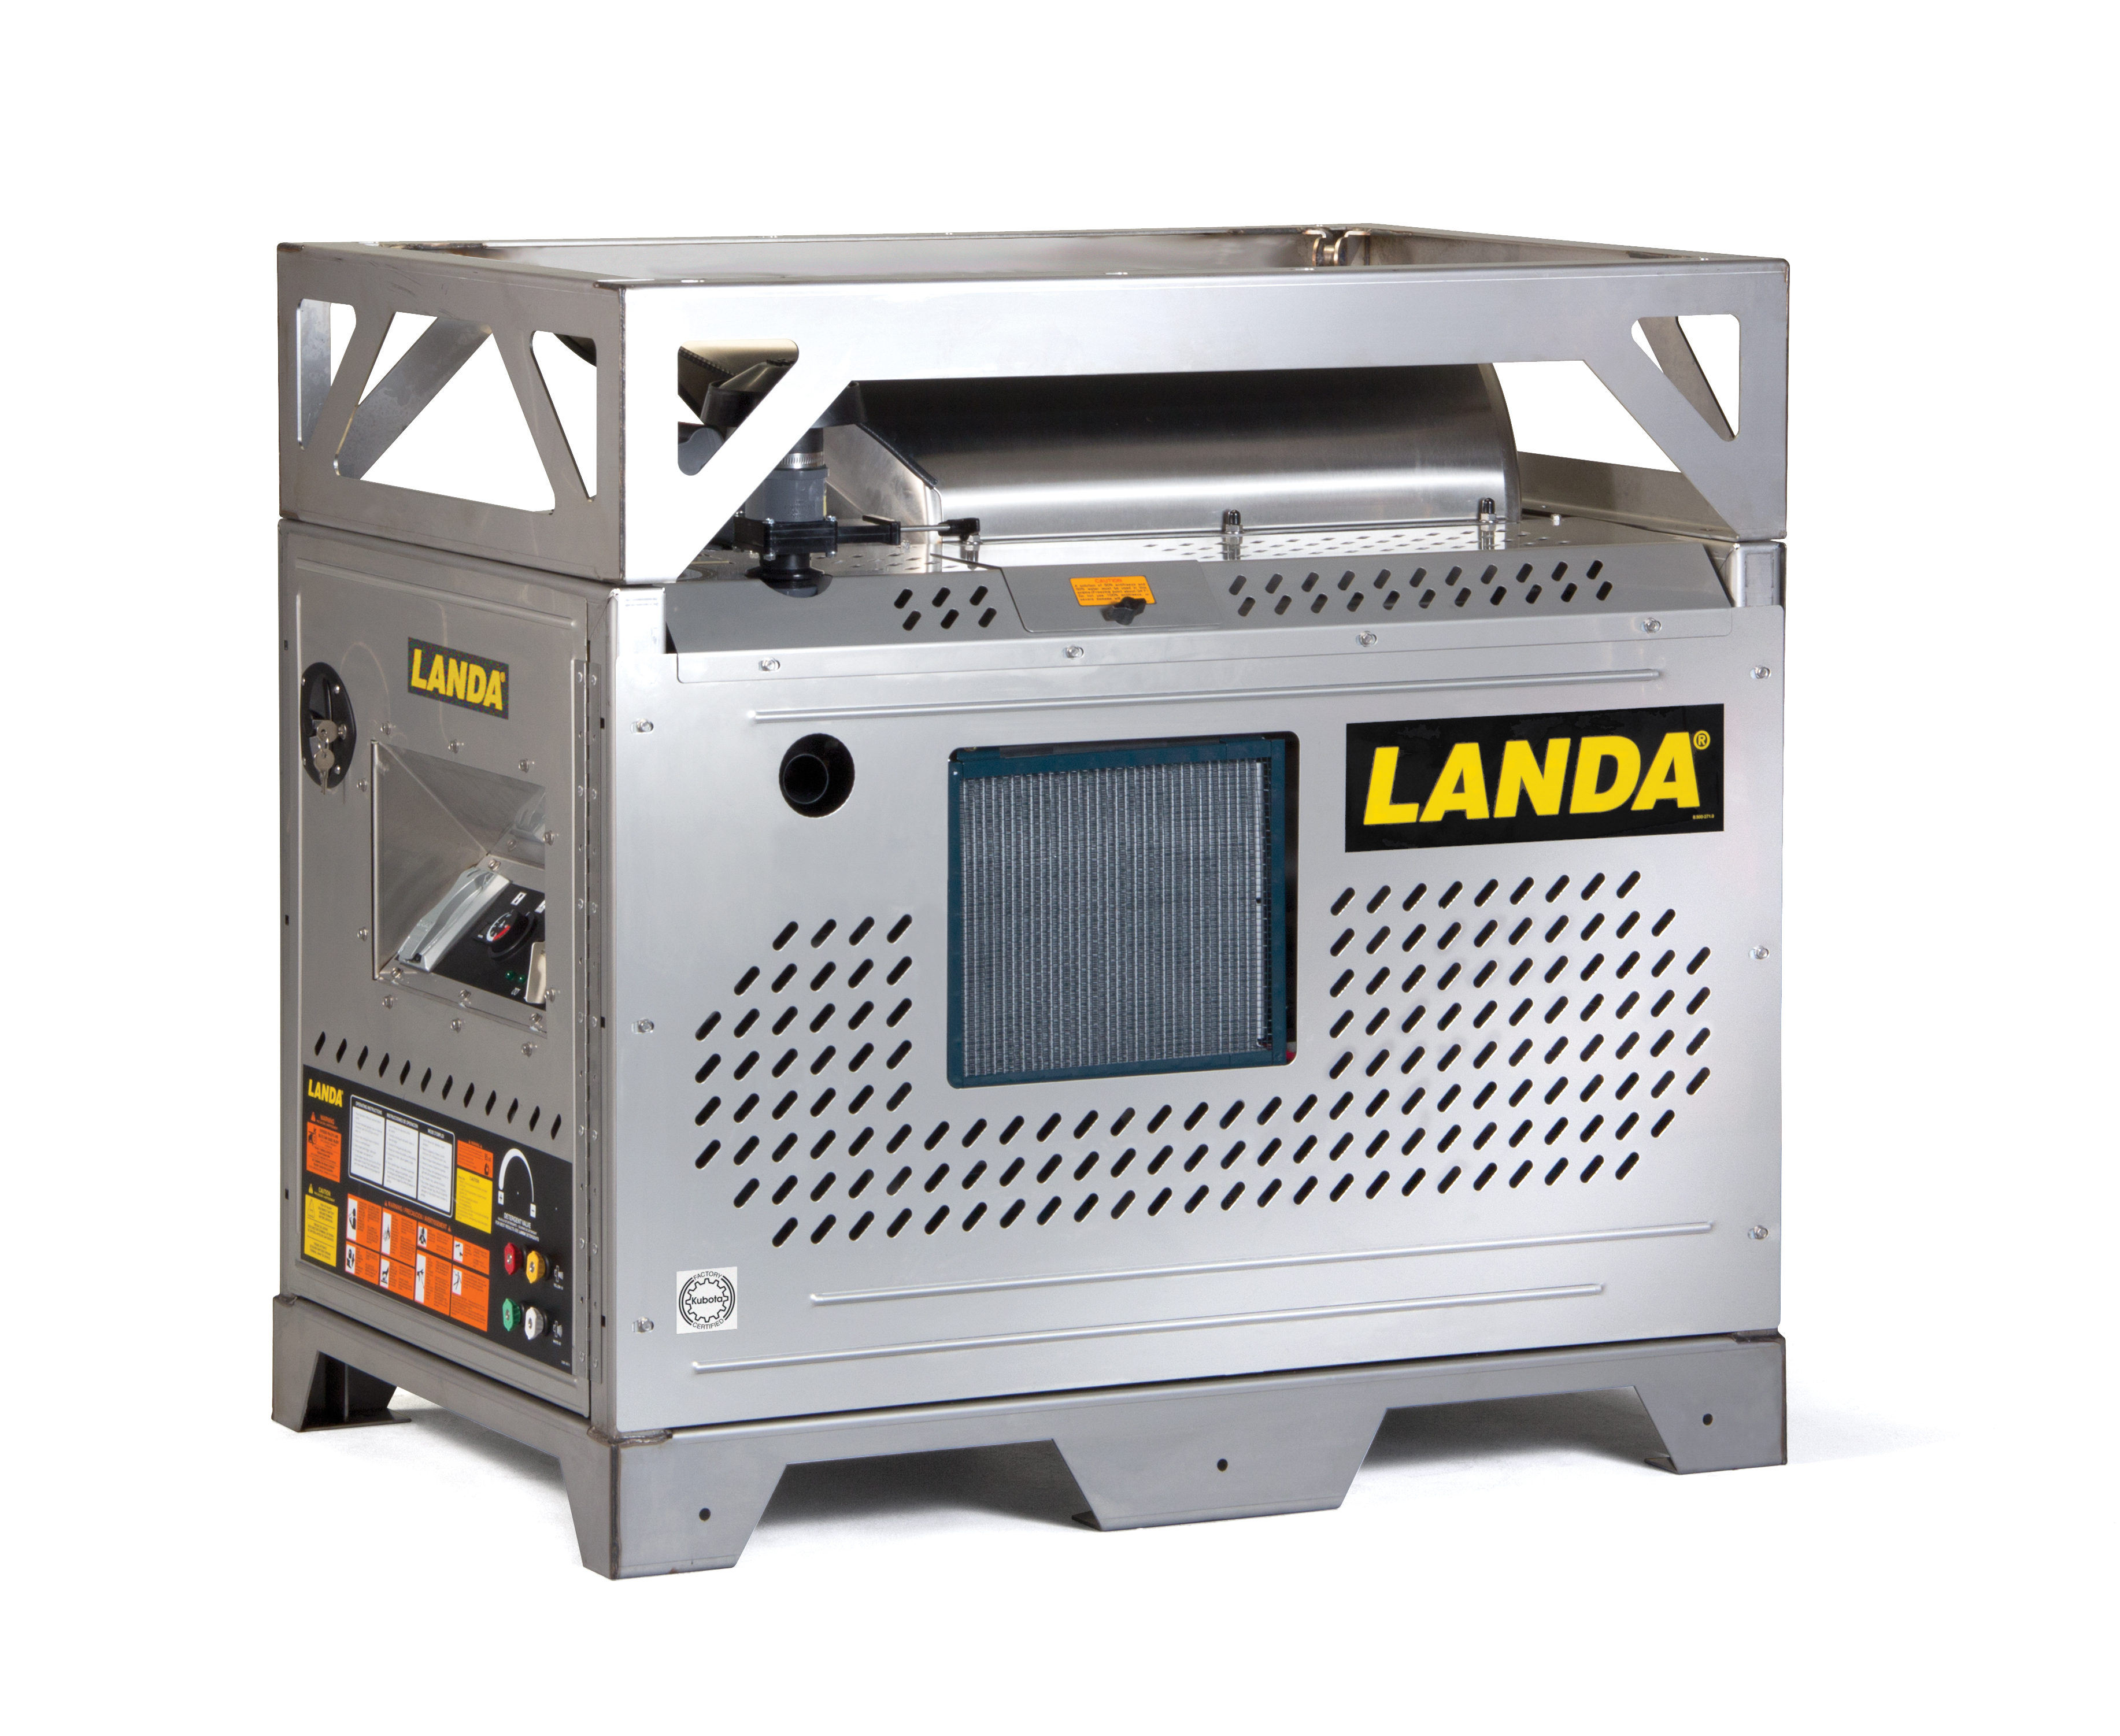 Landa Oil Fired Hot Water Pressure Washer PDHW5-35624E/SS